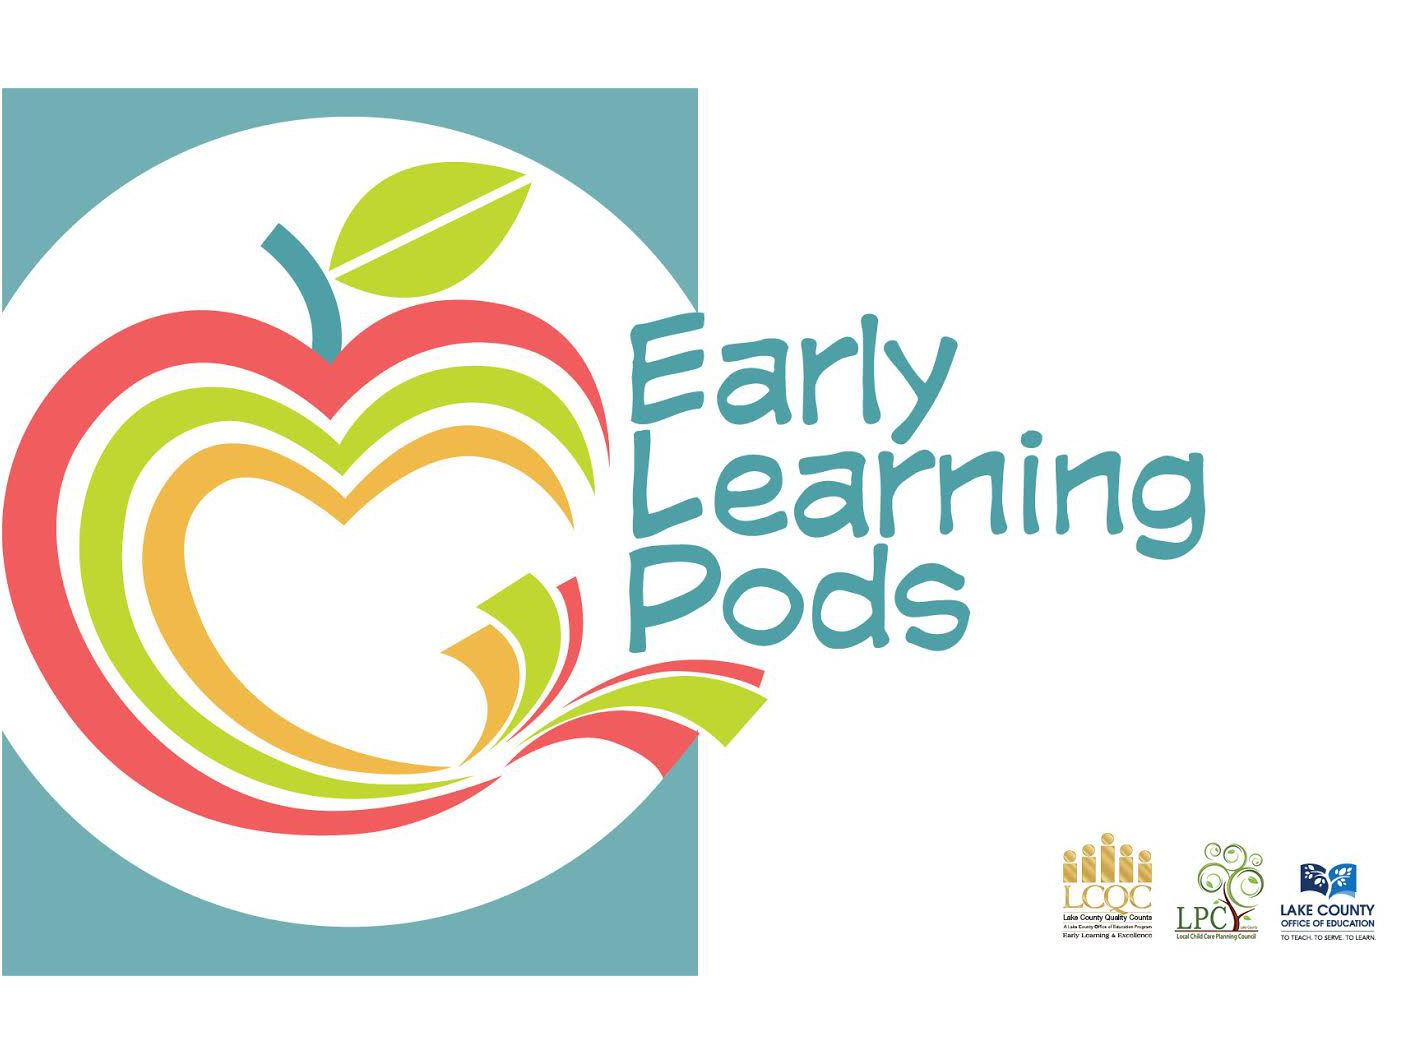 Early Learning Pods Graphic